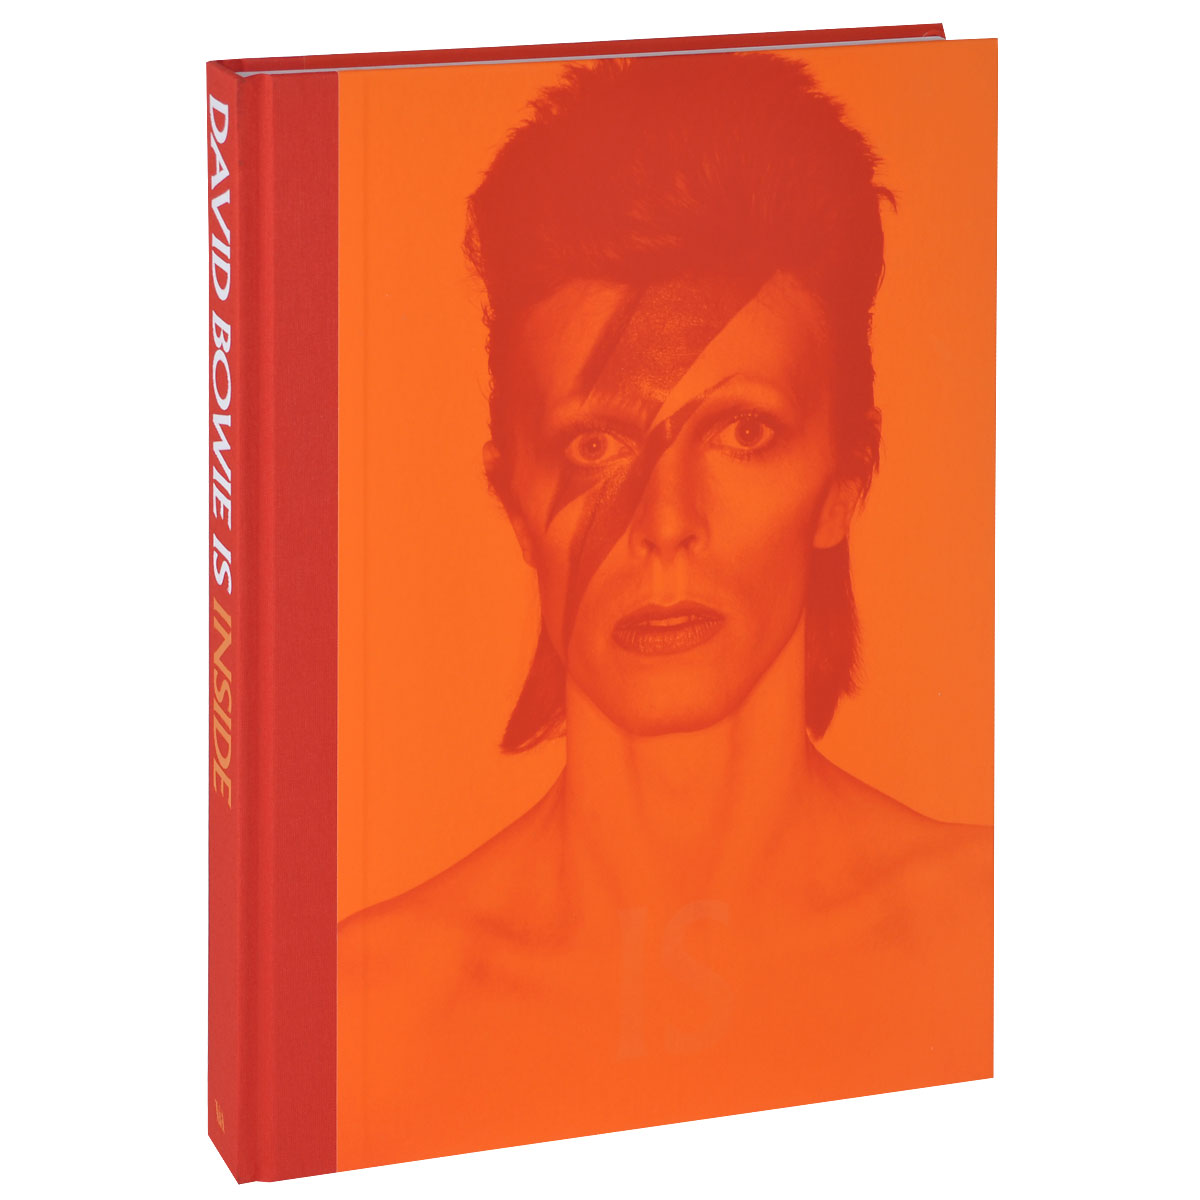 David Bowie Is... david bowie david bowie the rise and fall of ziggy stardust and the spiders from mars 180 gr